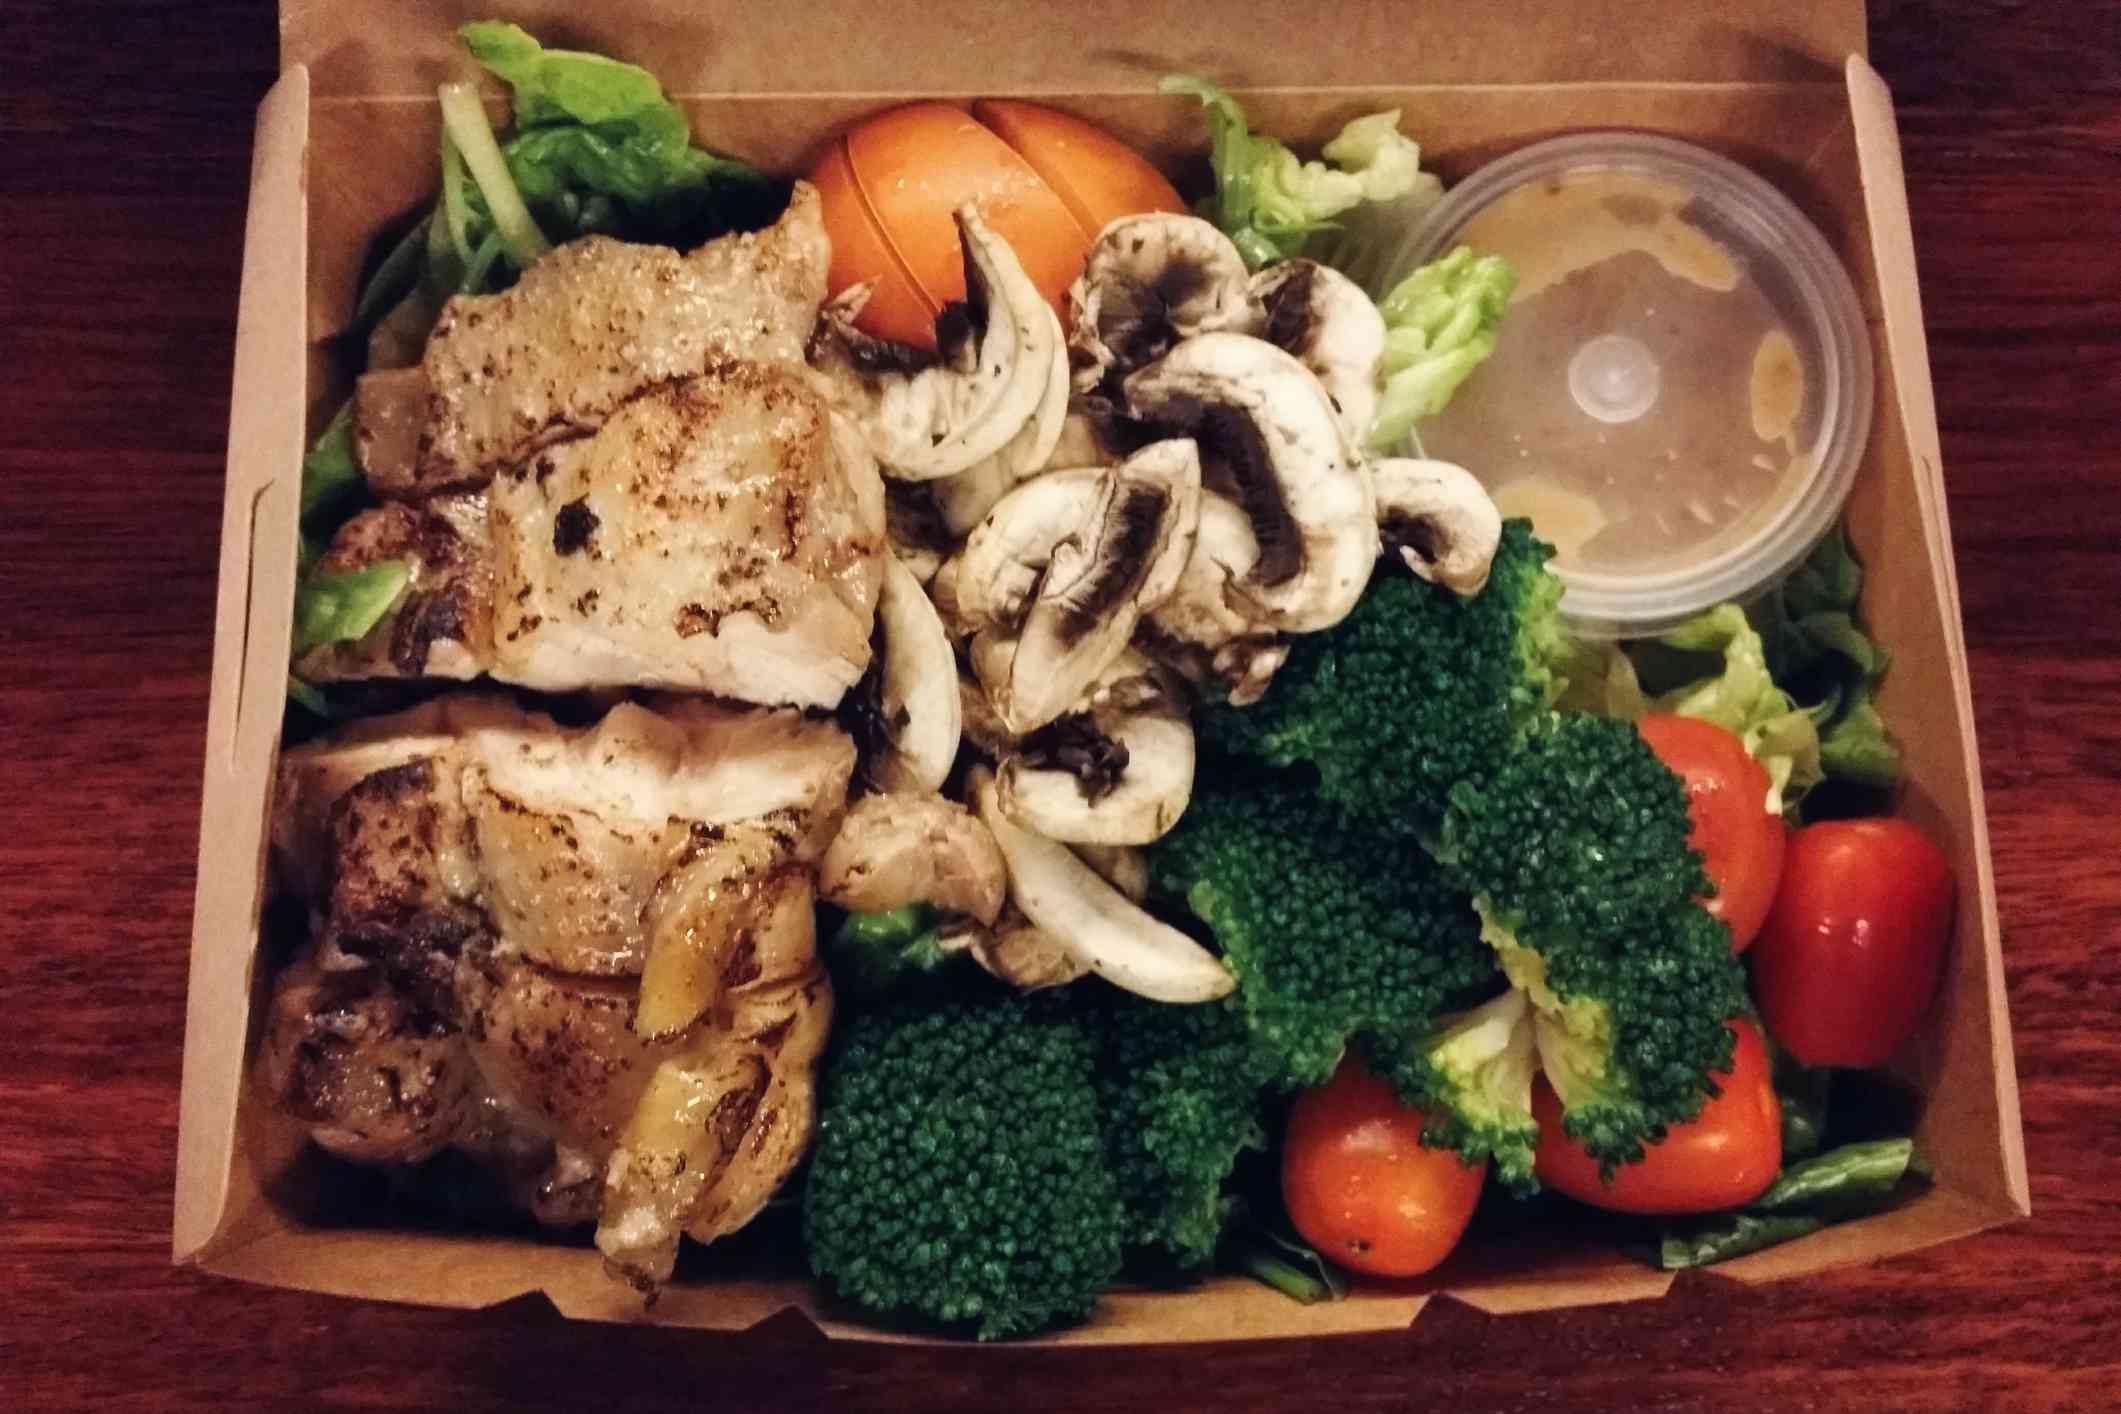 Meal kit with fish, vegetables, mushrooms, and dressing